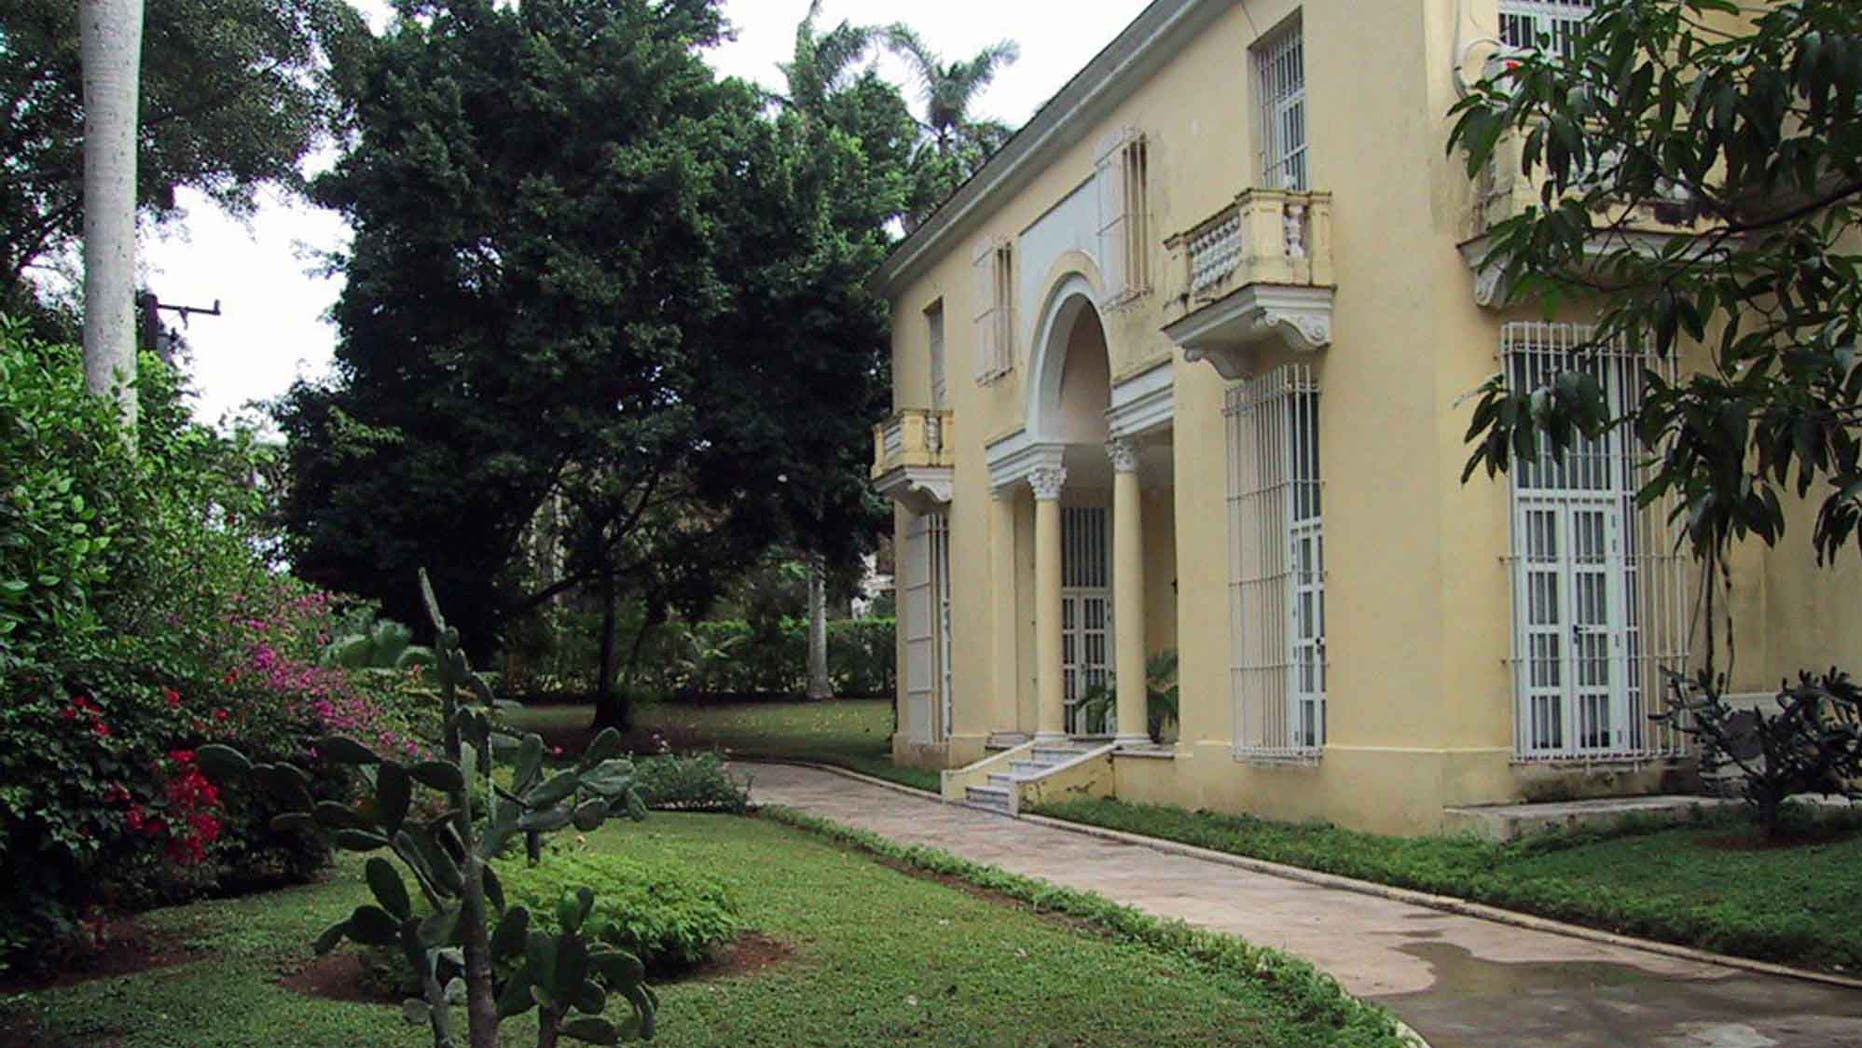 Residence owned by American Roy Schechter, confiscated after the Cuban Revolution in 1959.